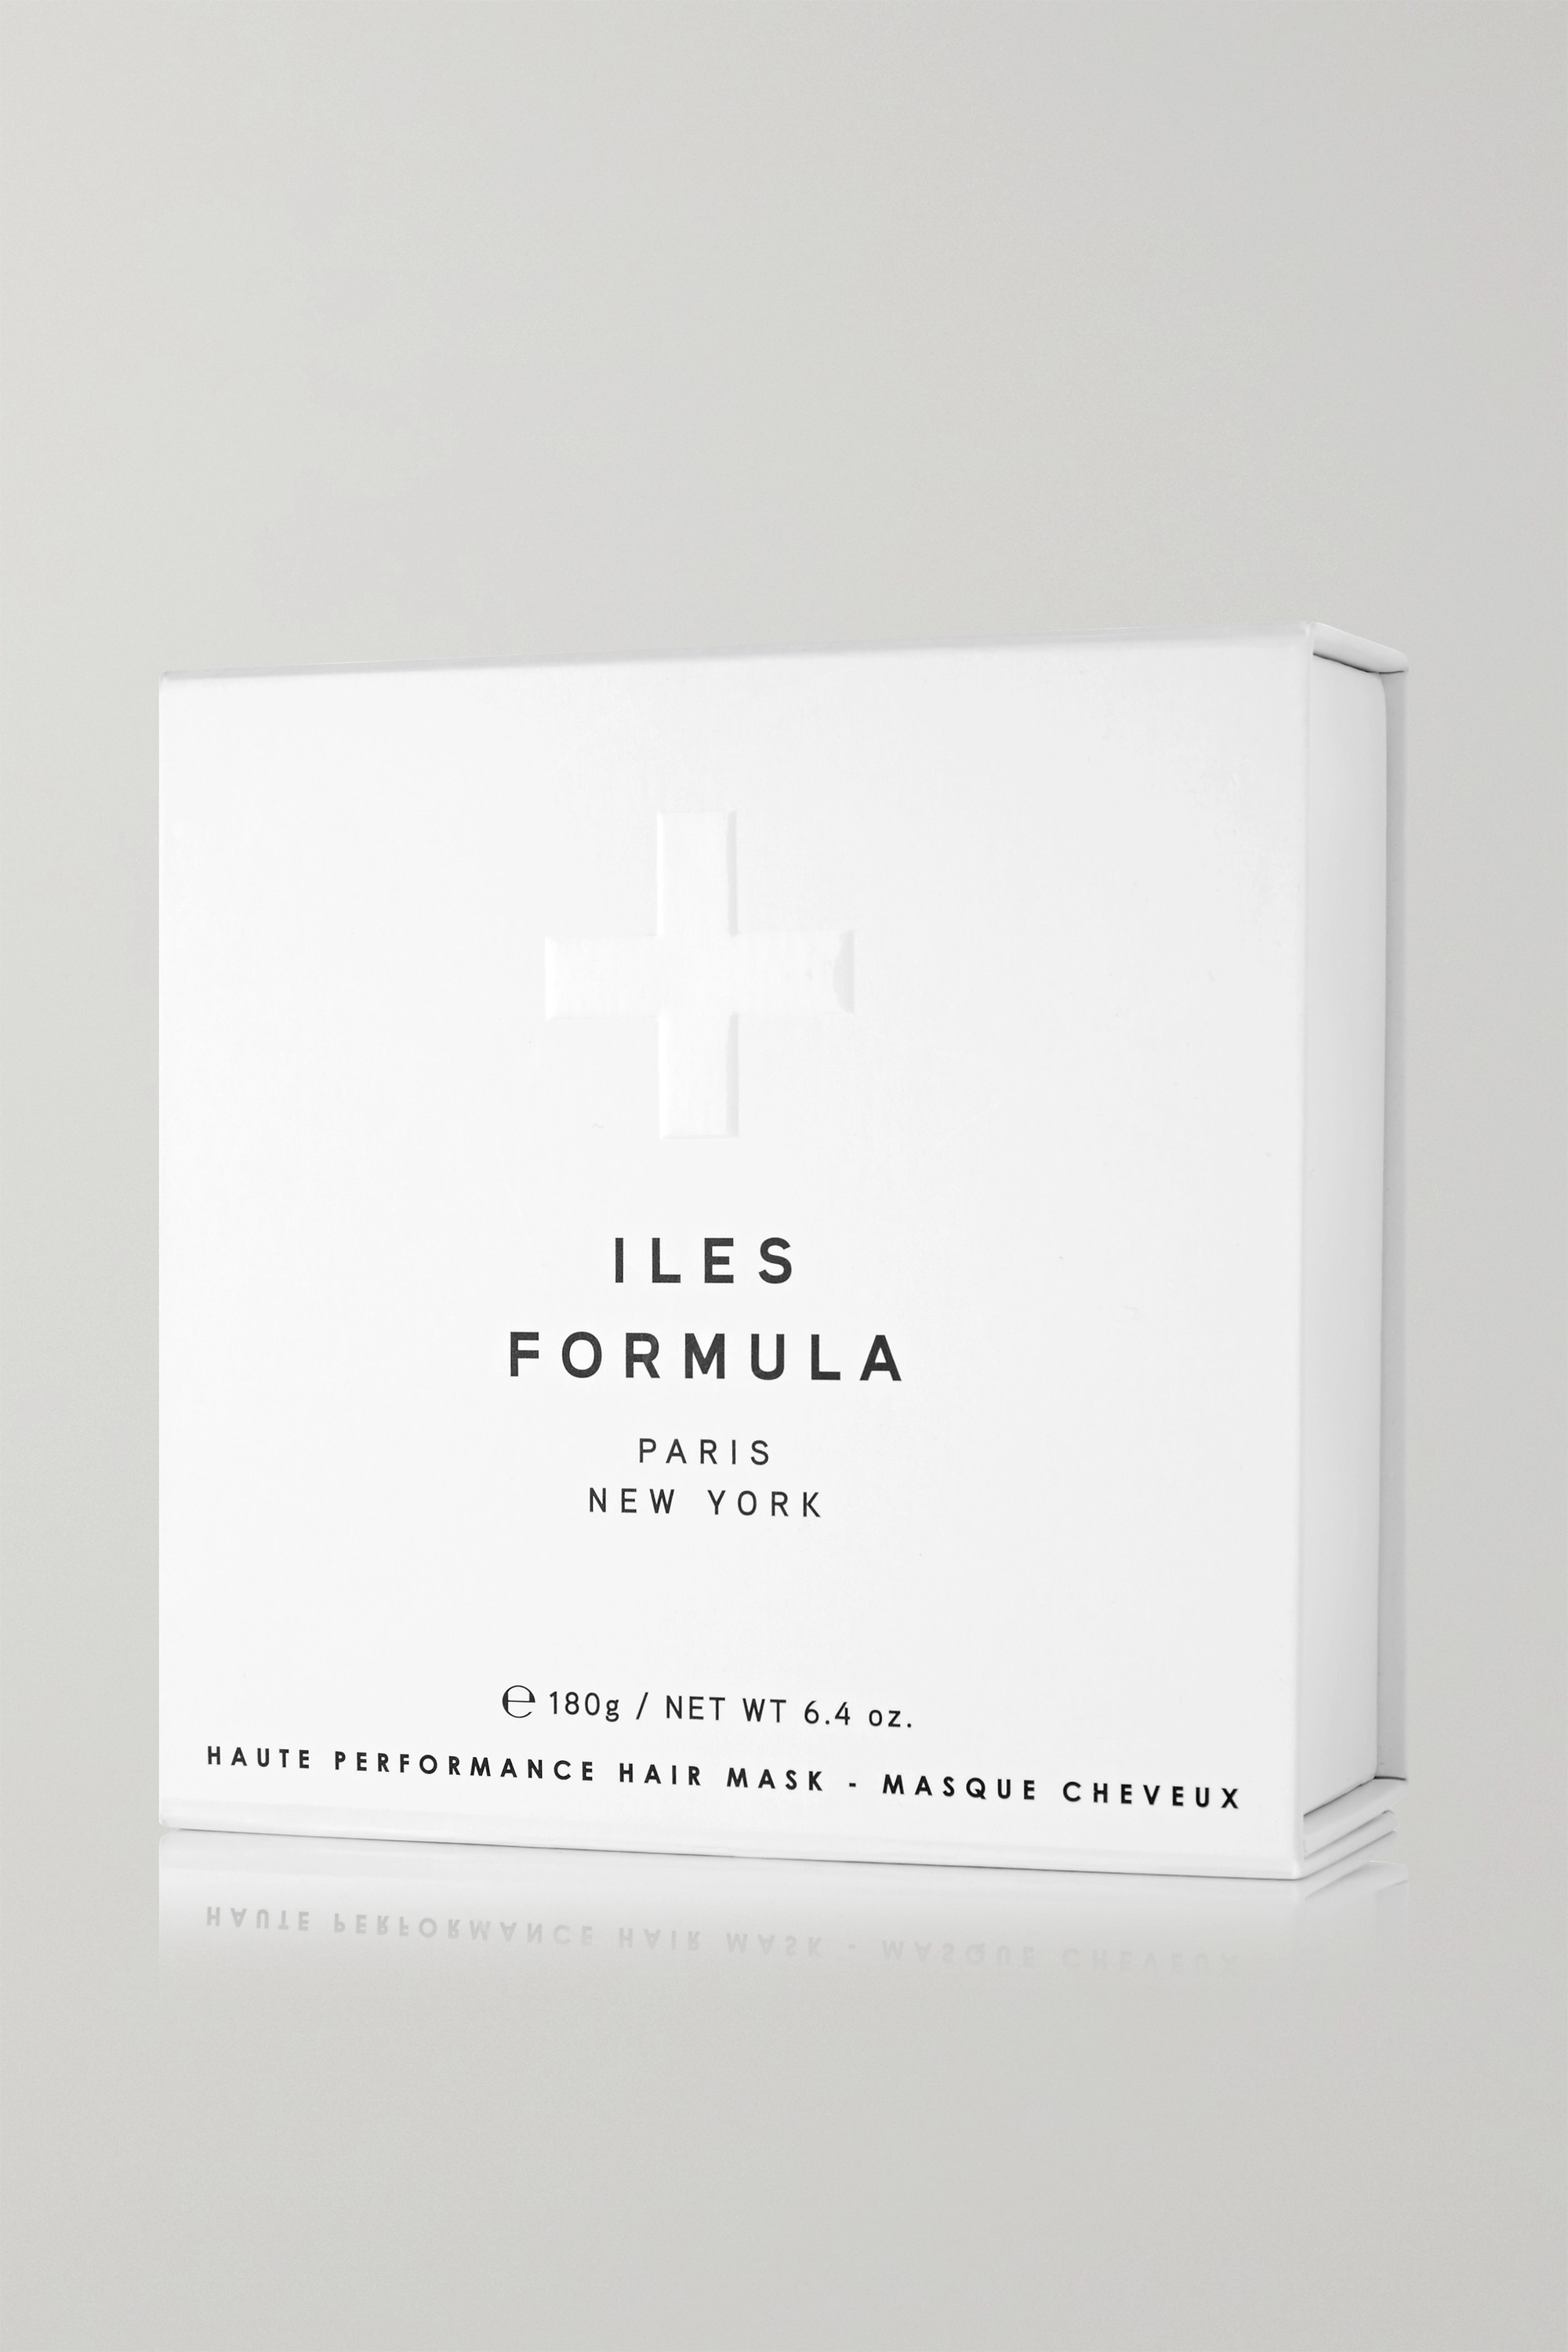 ILES FORMULA Haute Performance Hair Mask, 180g